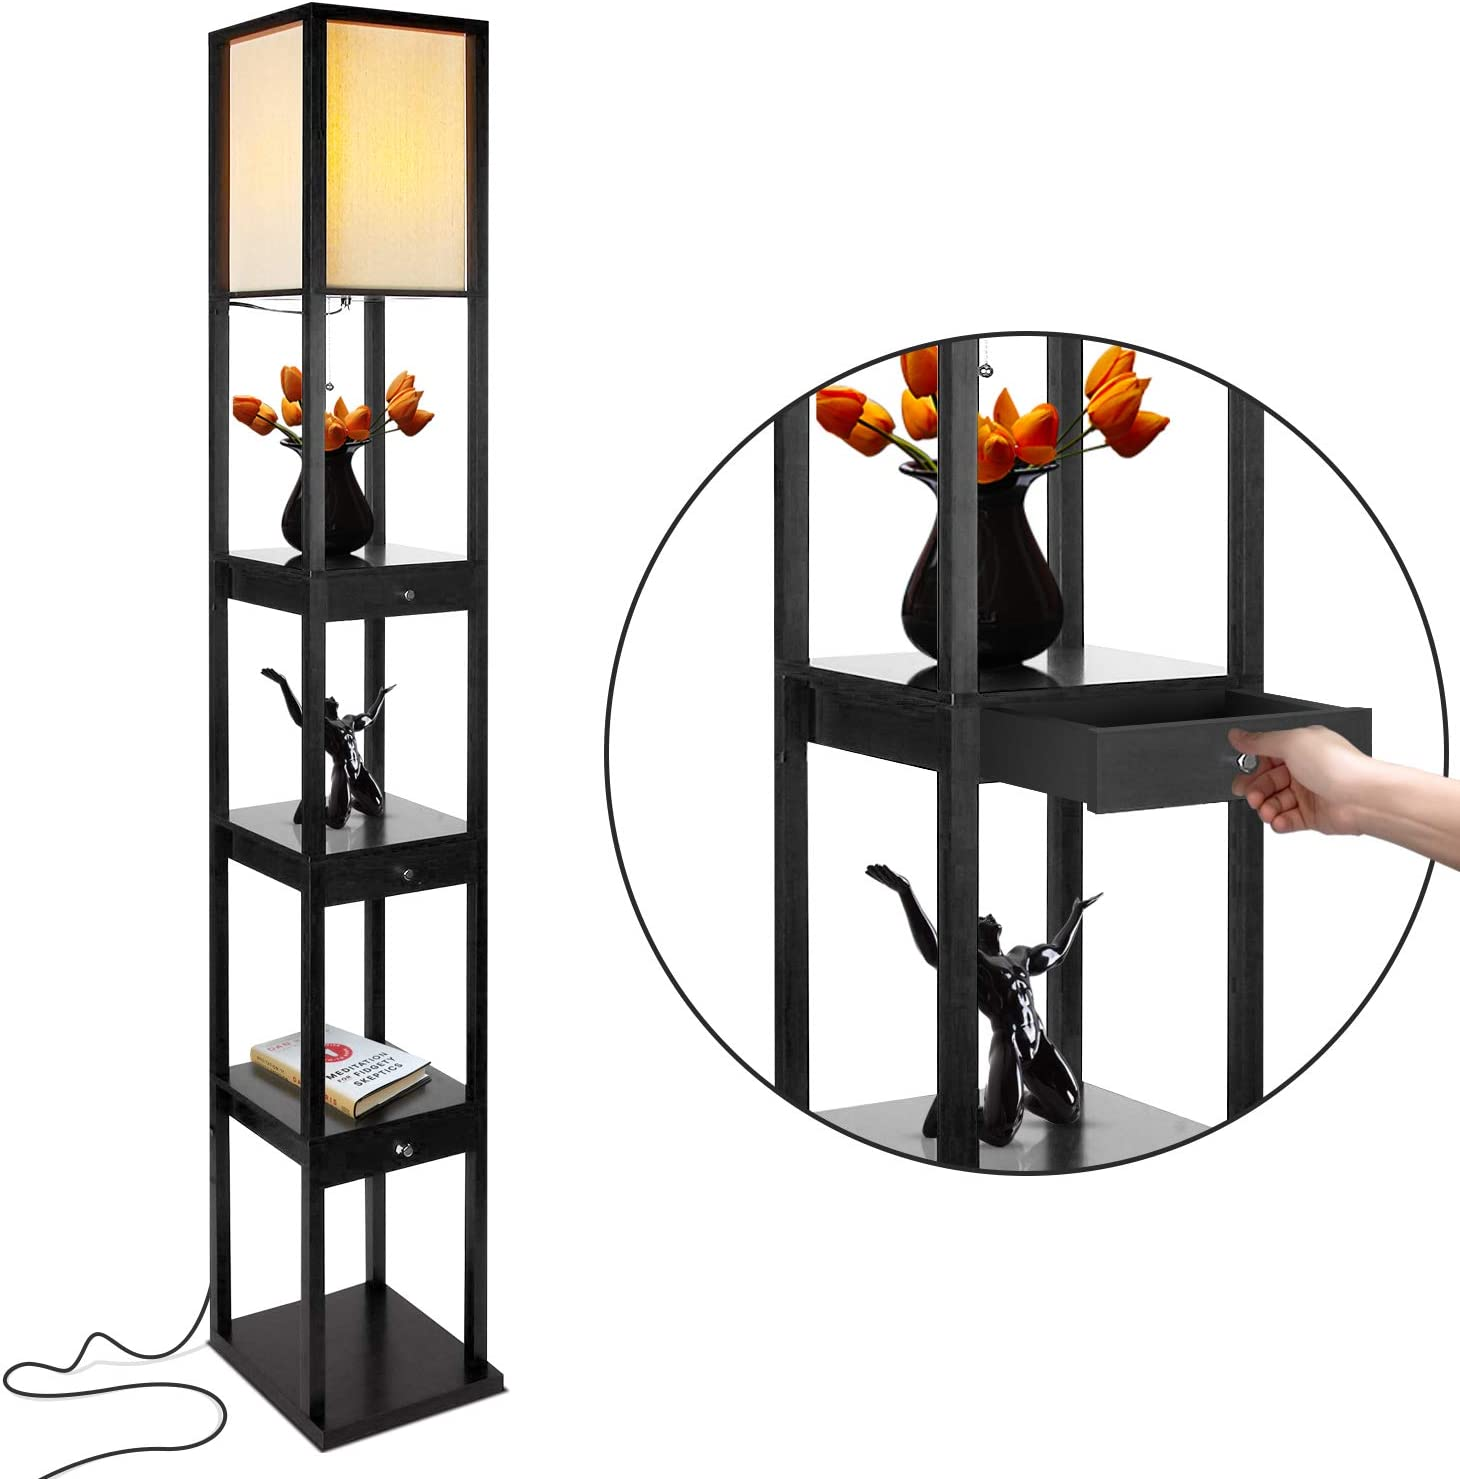 Brightech Maxwell 1 year warranty Drawer Edition Surprise price - Shelf LED Combin Lamp Floor